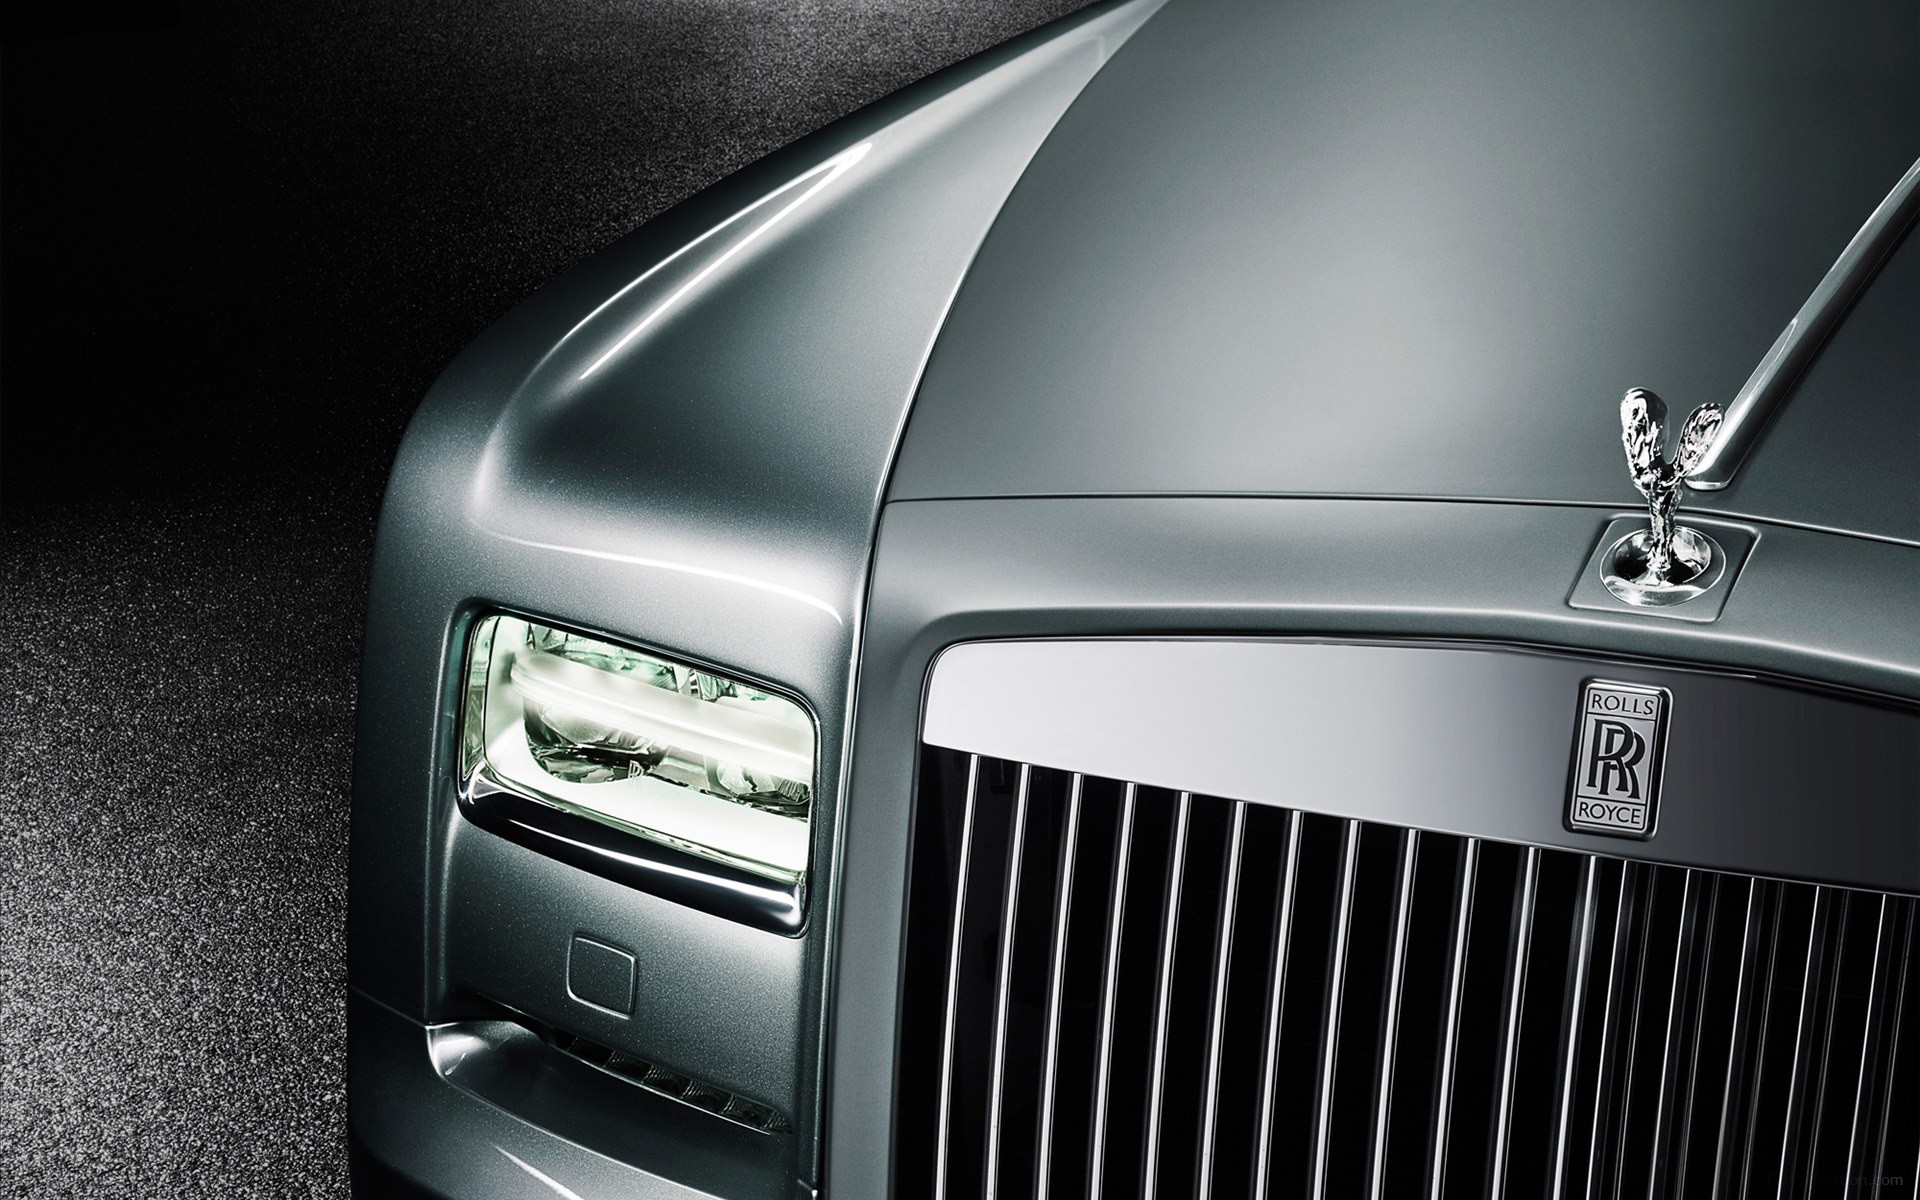 rolls royce phatom wallpaper